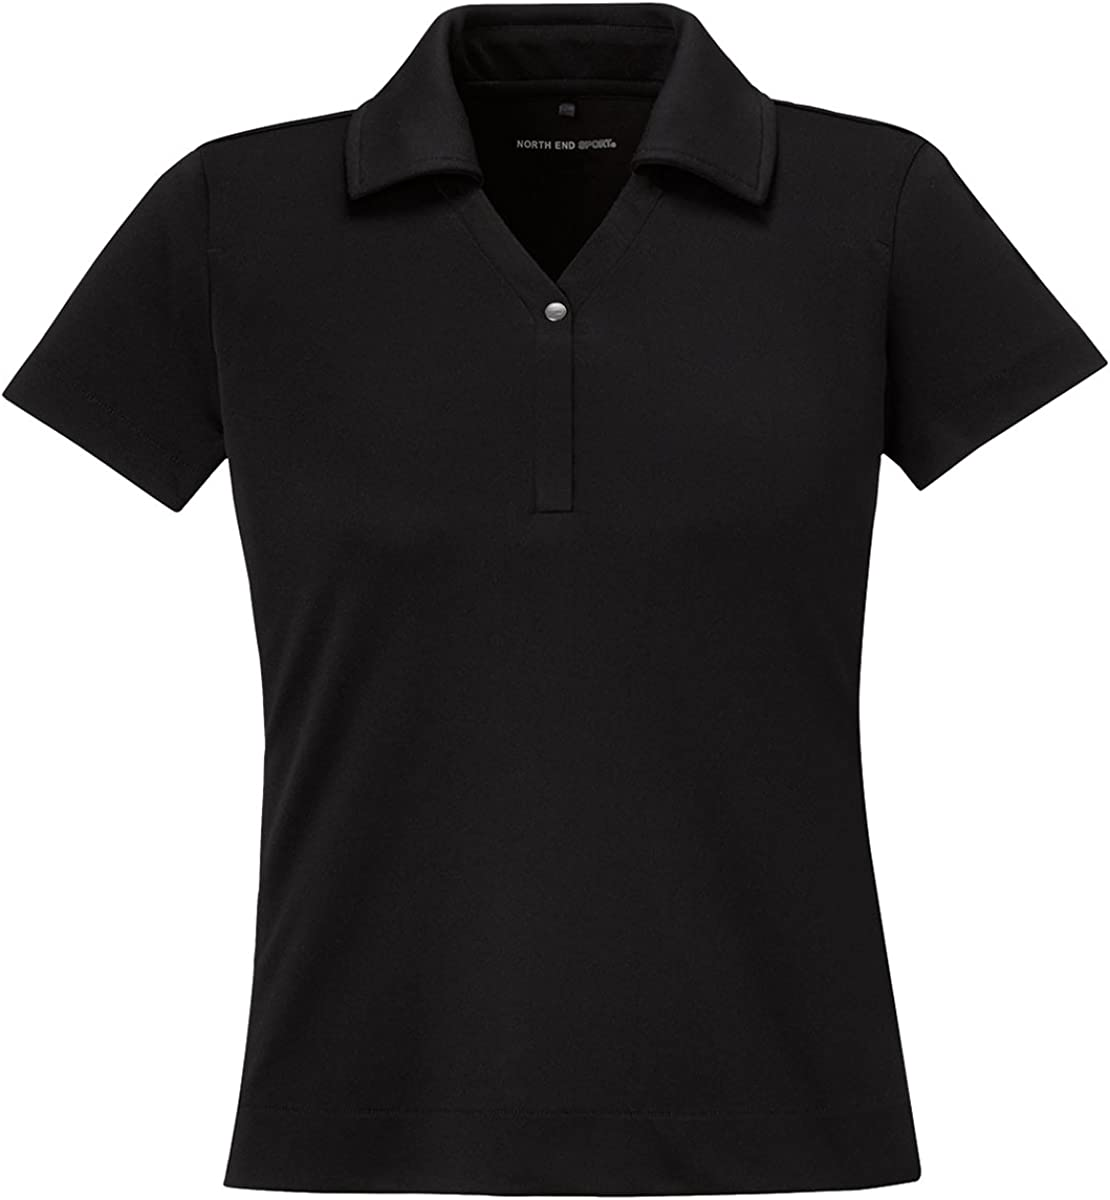 Ash City - North End Sport Red North End Sport Ladies Evap Quick Dry Performance Polo, XL, Black 703